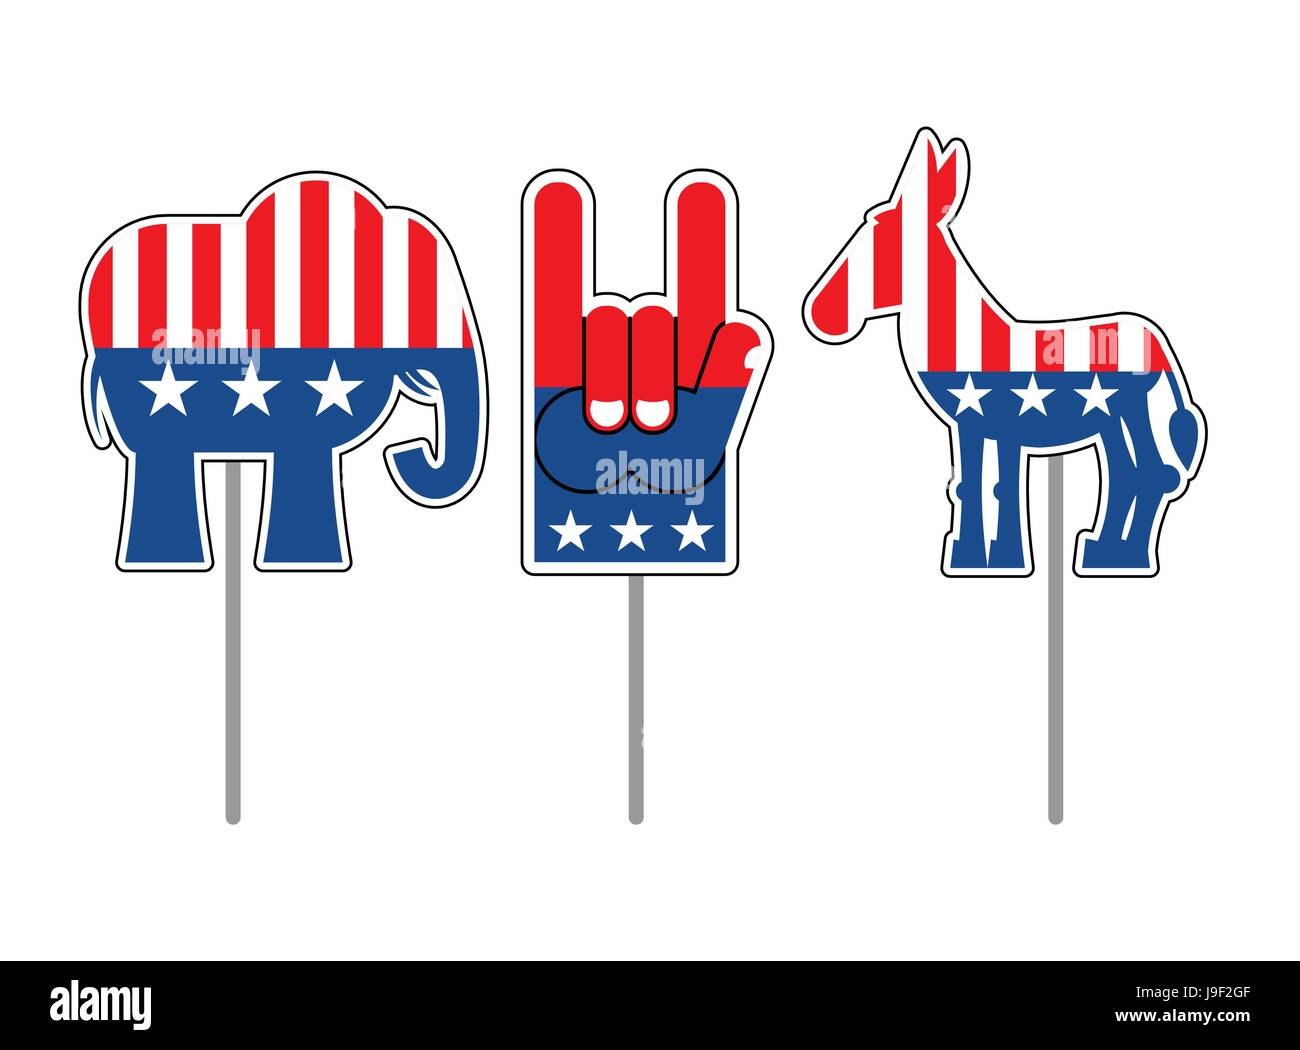 Elephant And Donkey Symbols Of Democrats And Republicans Political